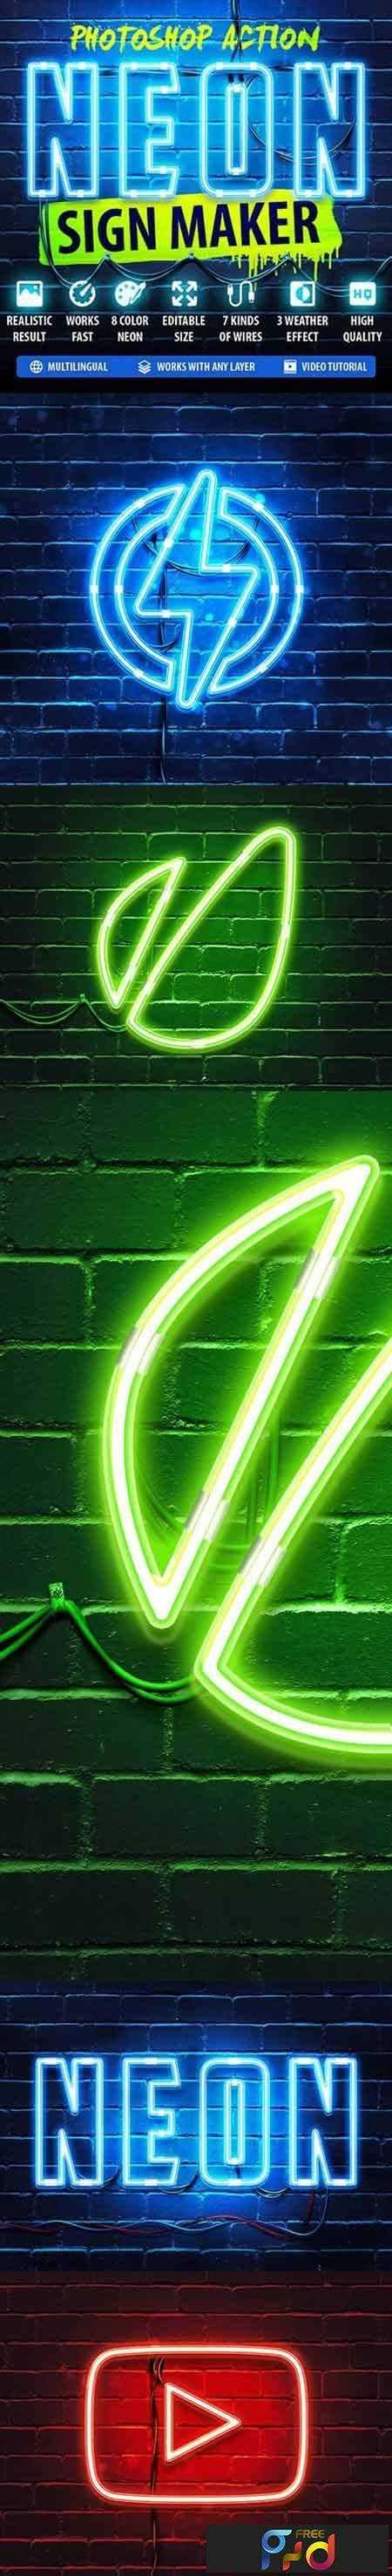 1703260 Neon Sign Maker Photoshop Action 19387470 Free Download Photoshop Action Lightroom Neon Sign Photoshop Template